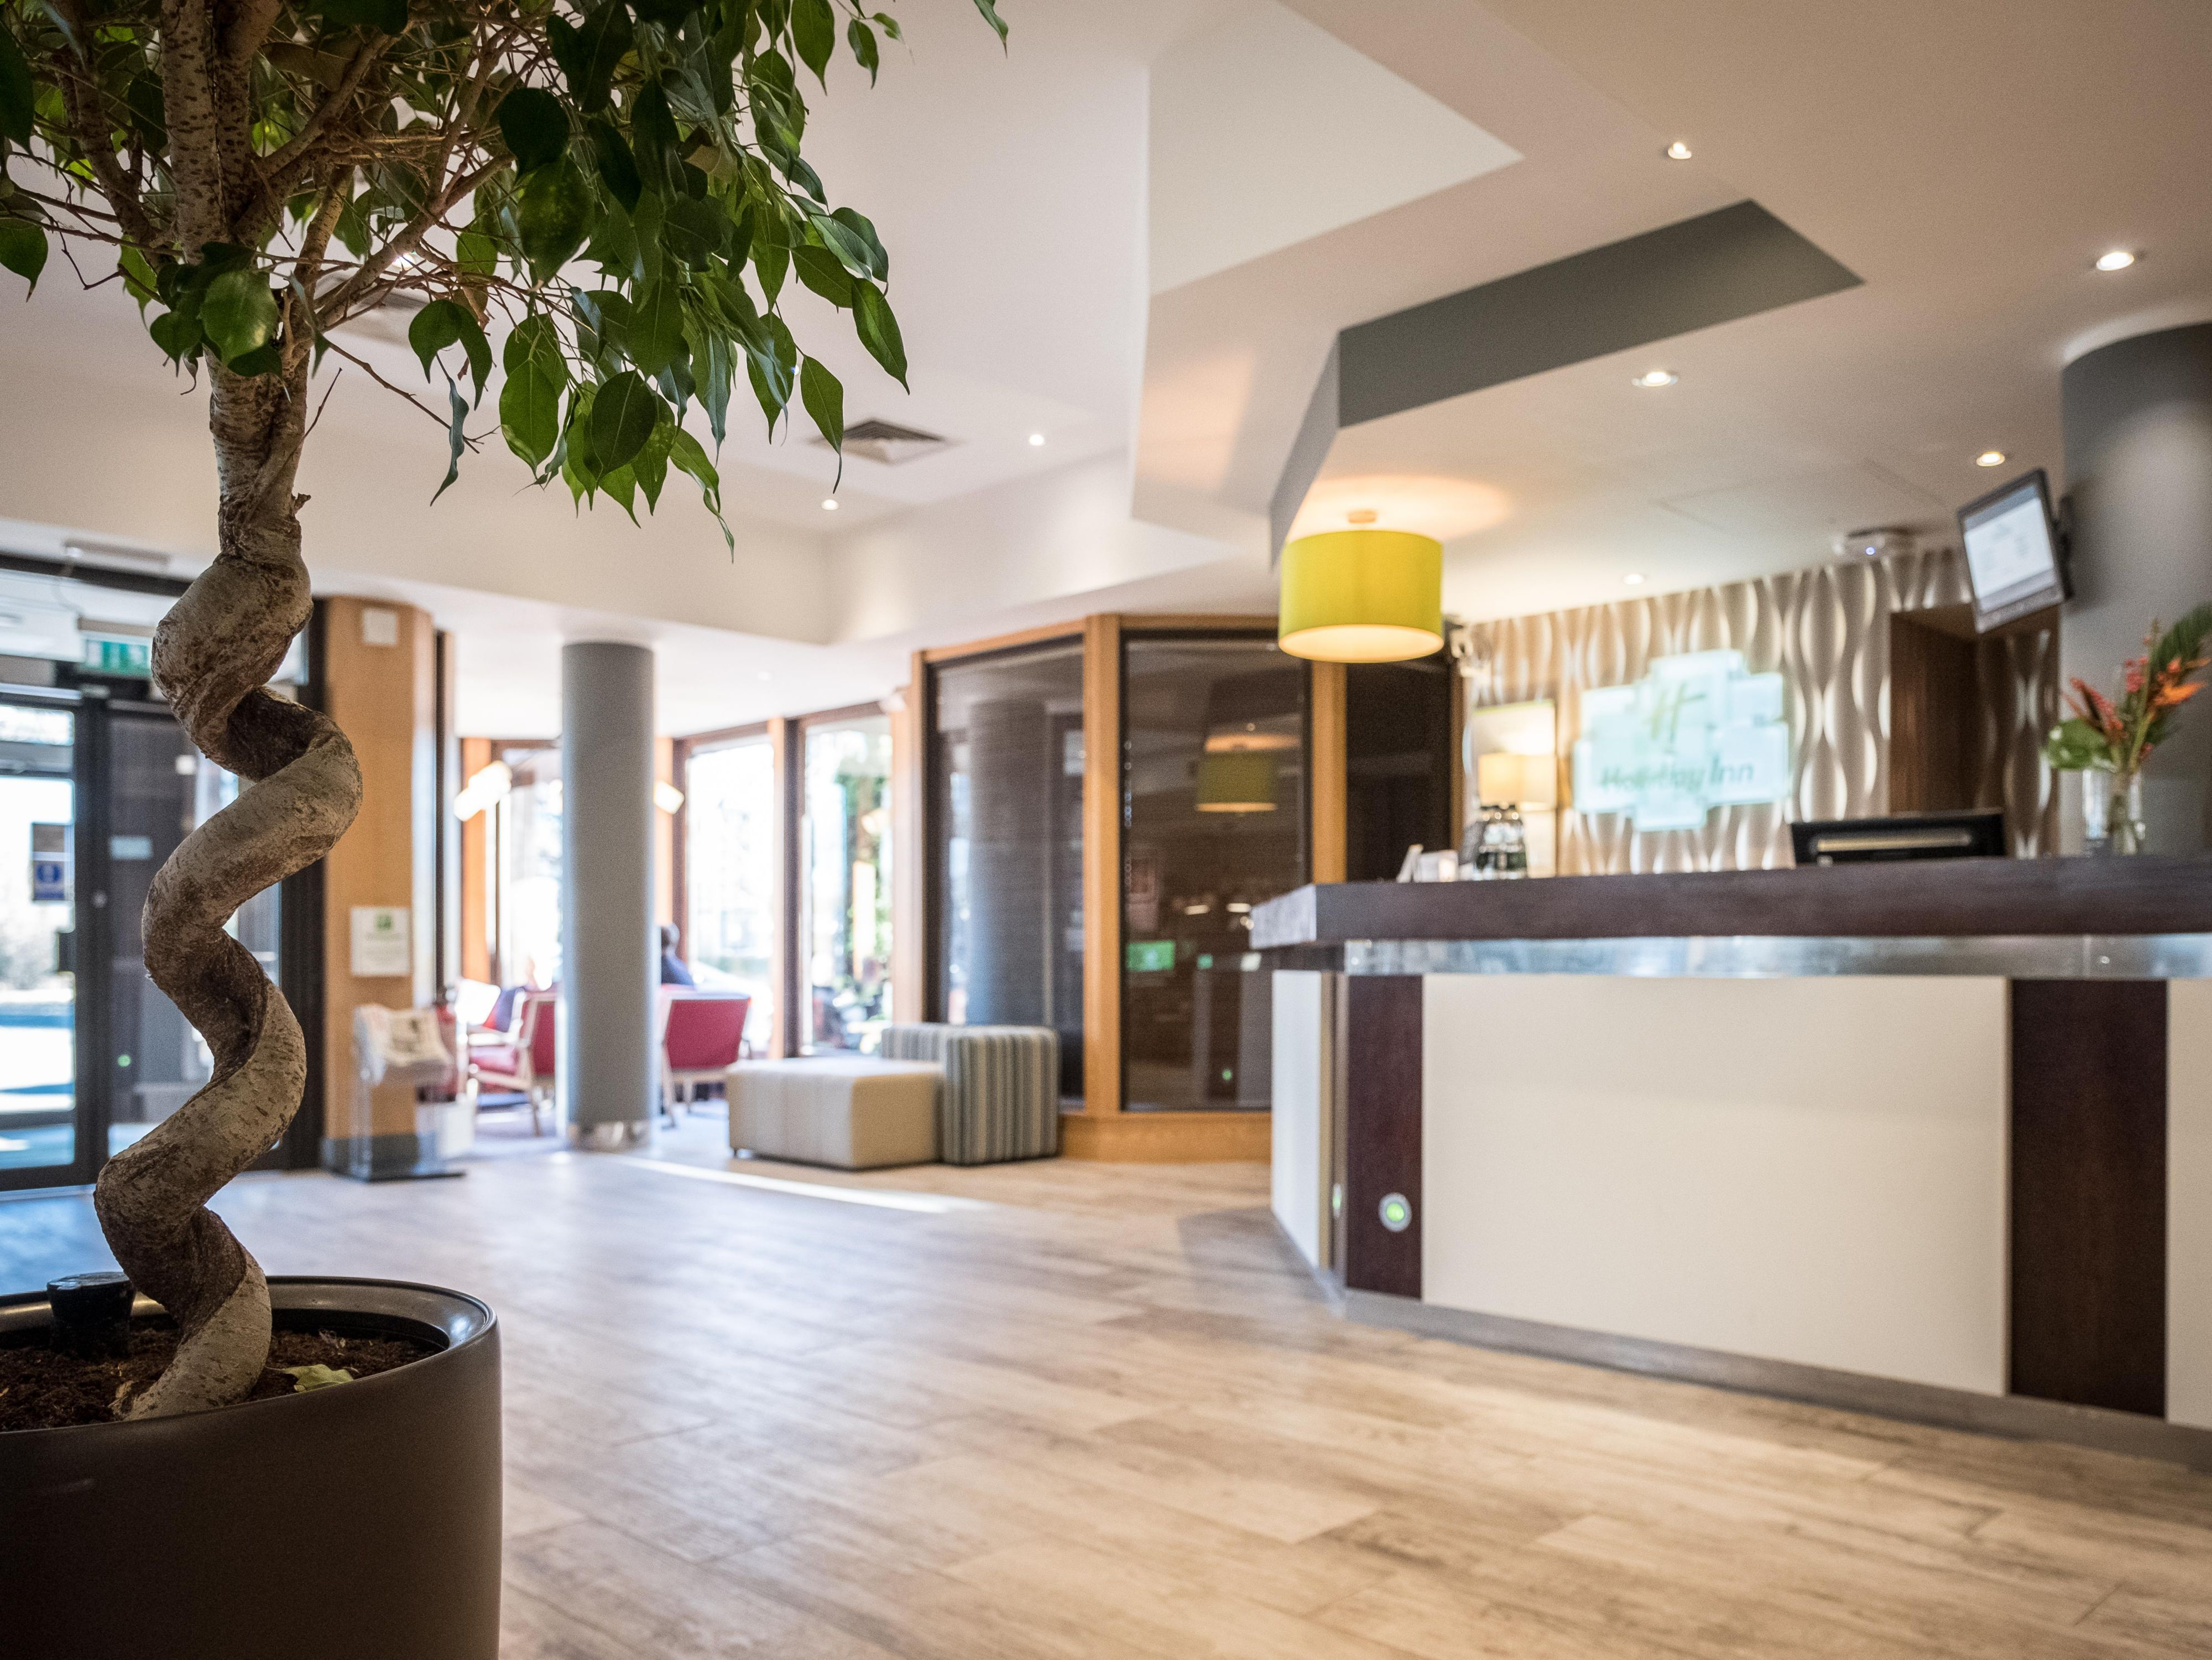 Hotels in Milton Keynes | Best places to stay in Milton Keynes ...